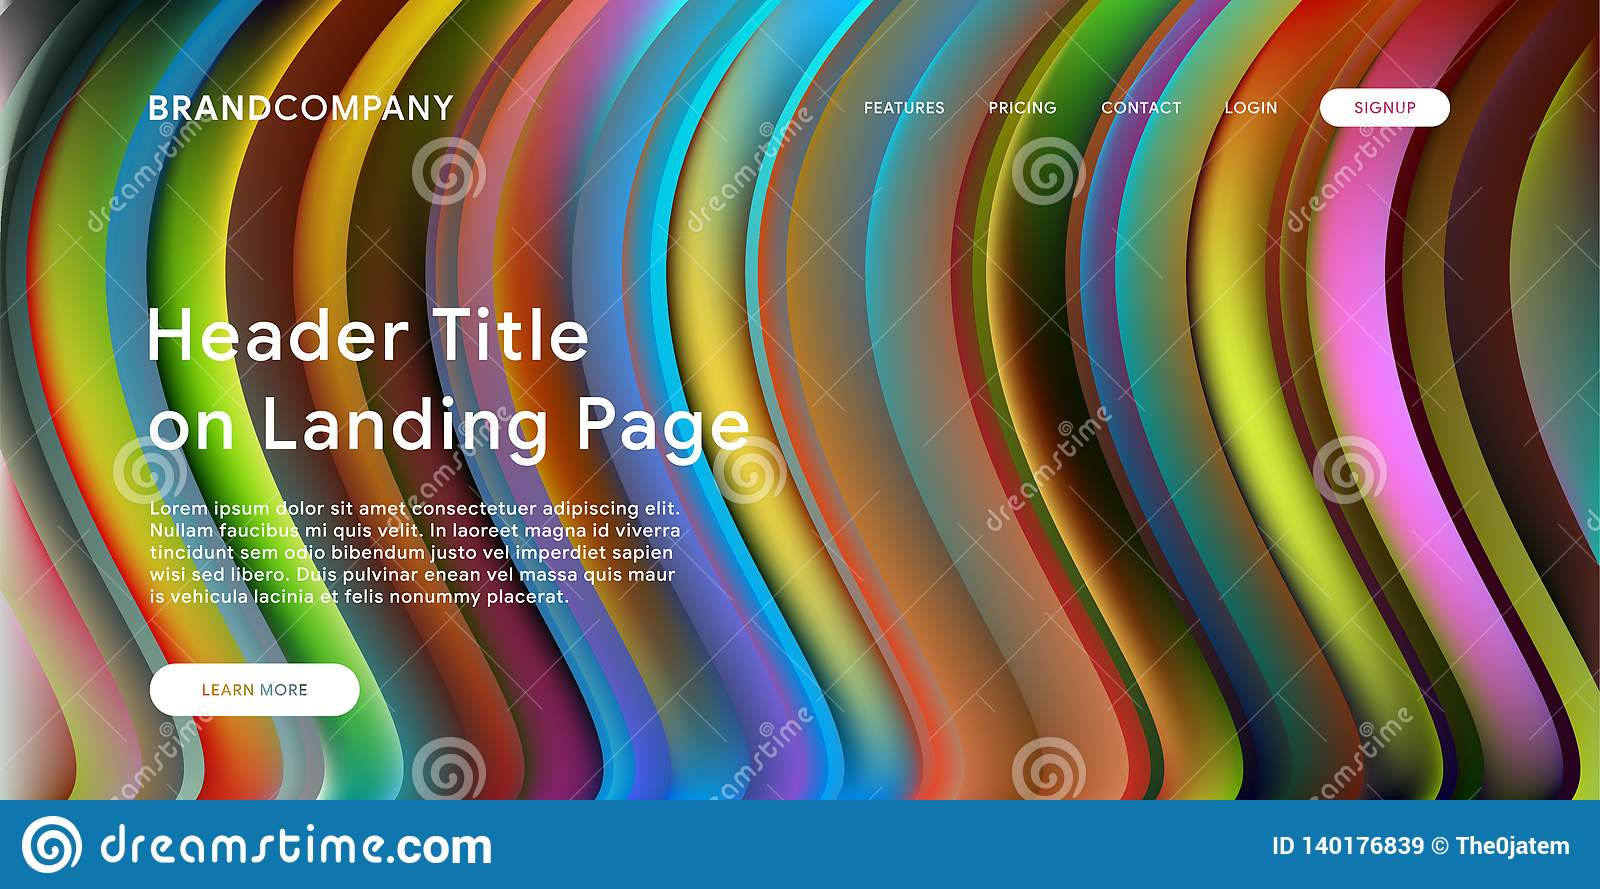 Creative design with fluid colorful shapes. Trendy color gradients. Strip design. Fluid shapes composition. Futuristic design.